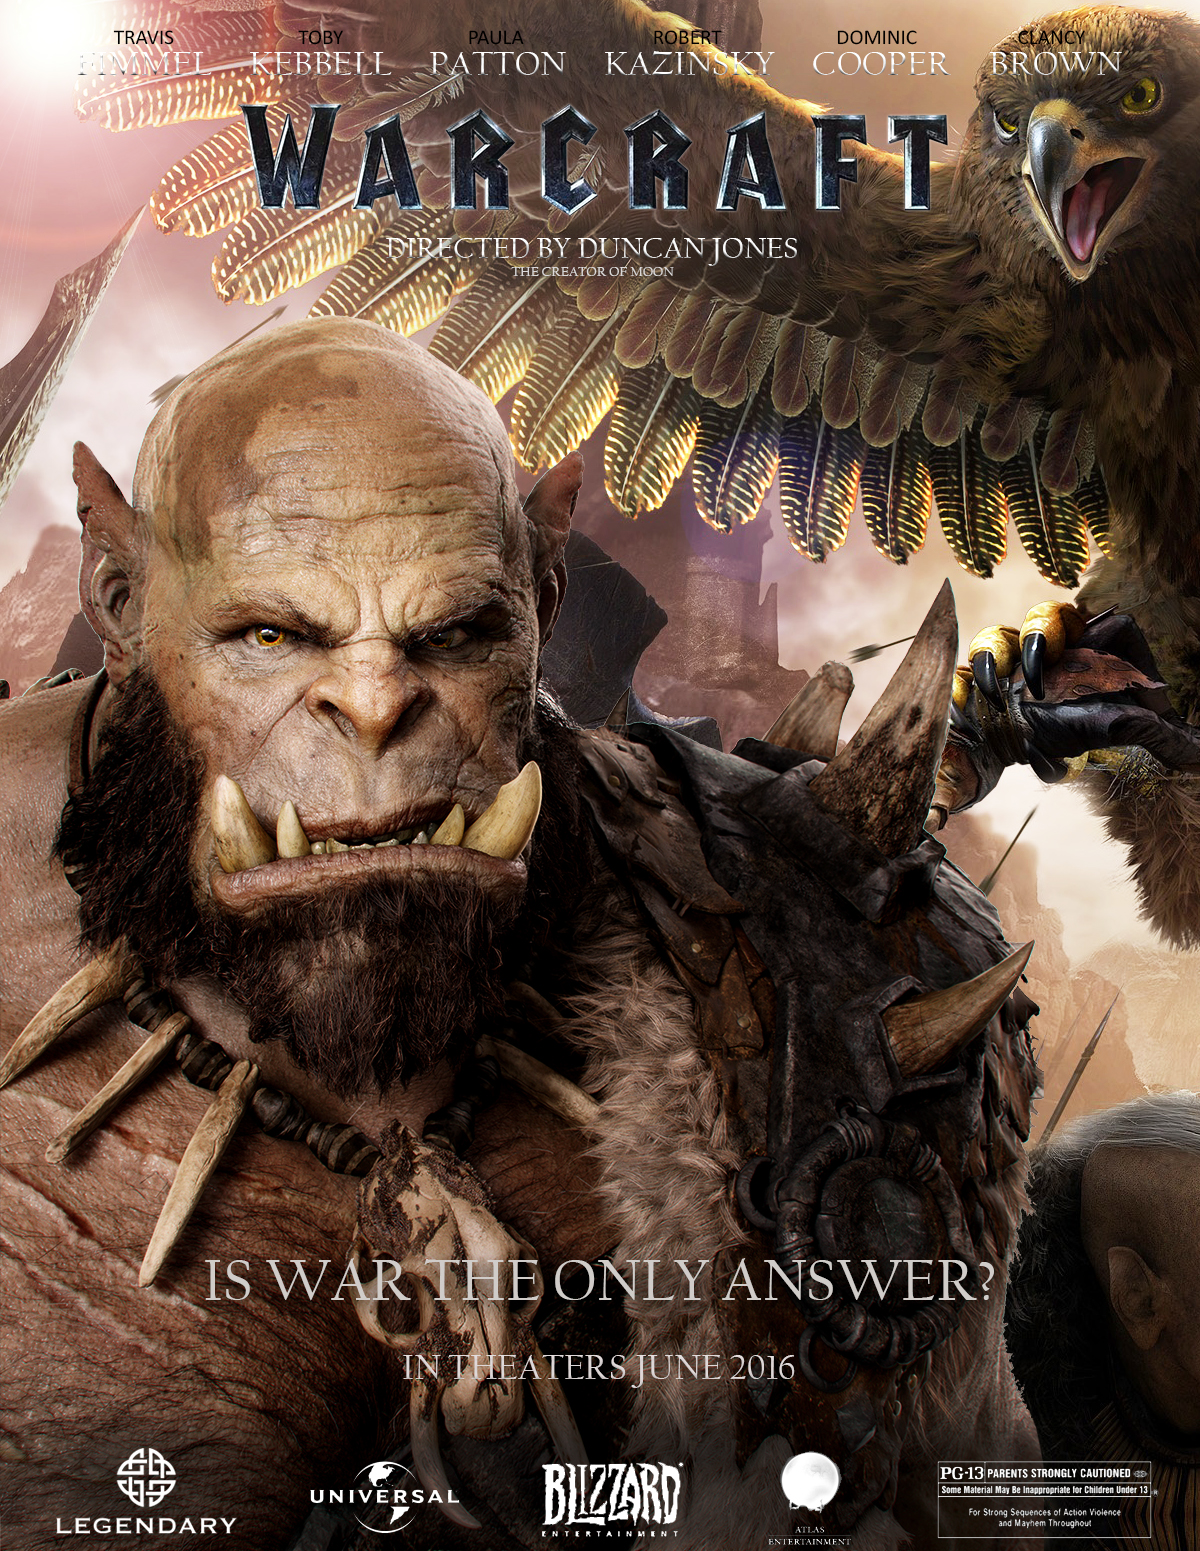 Warcraft Poster Wallpaper 2018 In Movies - Ramona And Beezus Movie Poster - HD Wallpaper